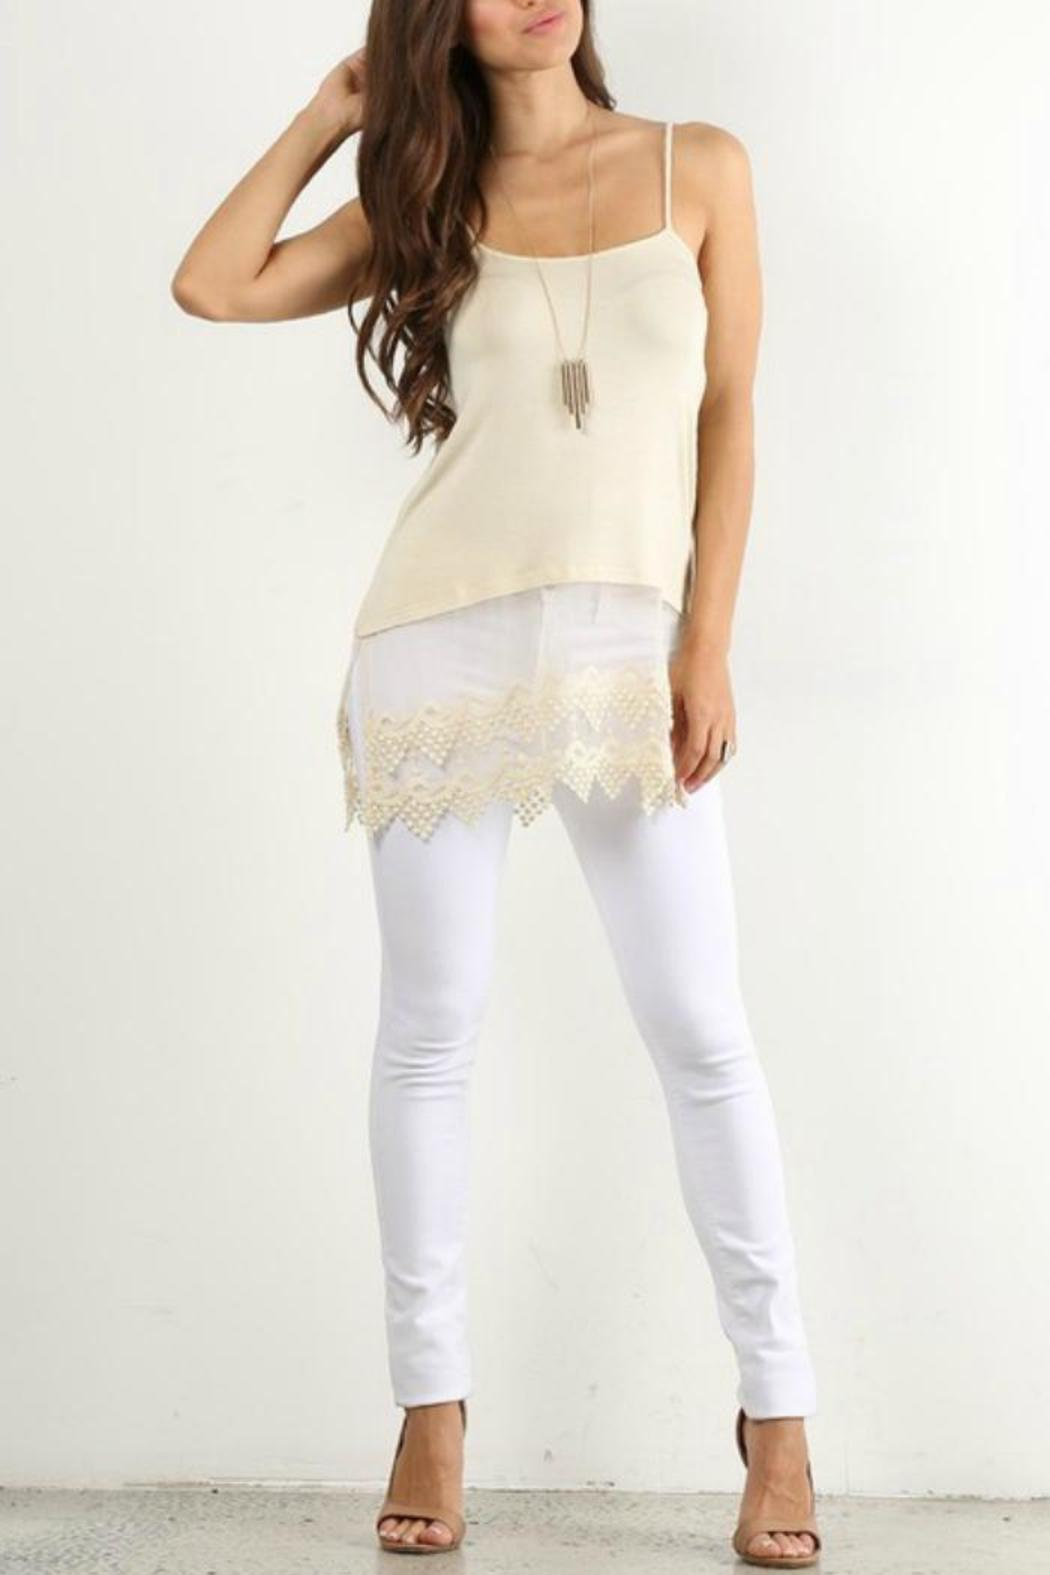 Origami Lace Extender Top from Texas by Dee Dee Style ... - photo#7